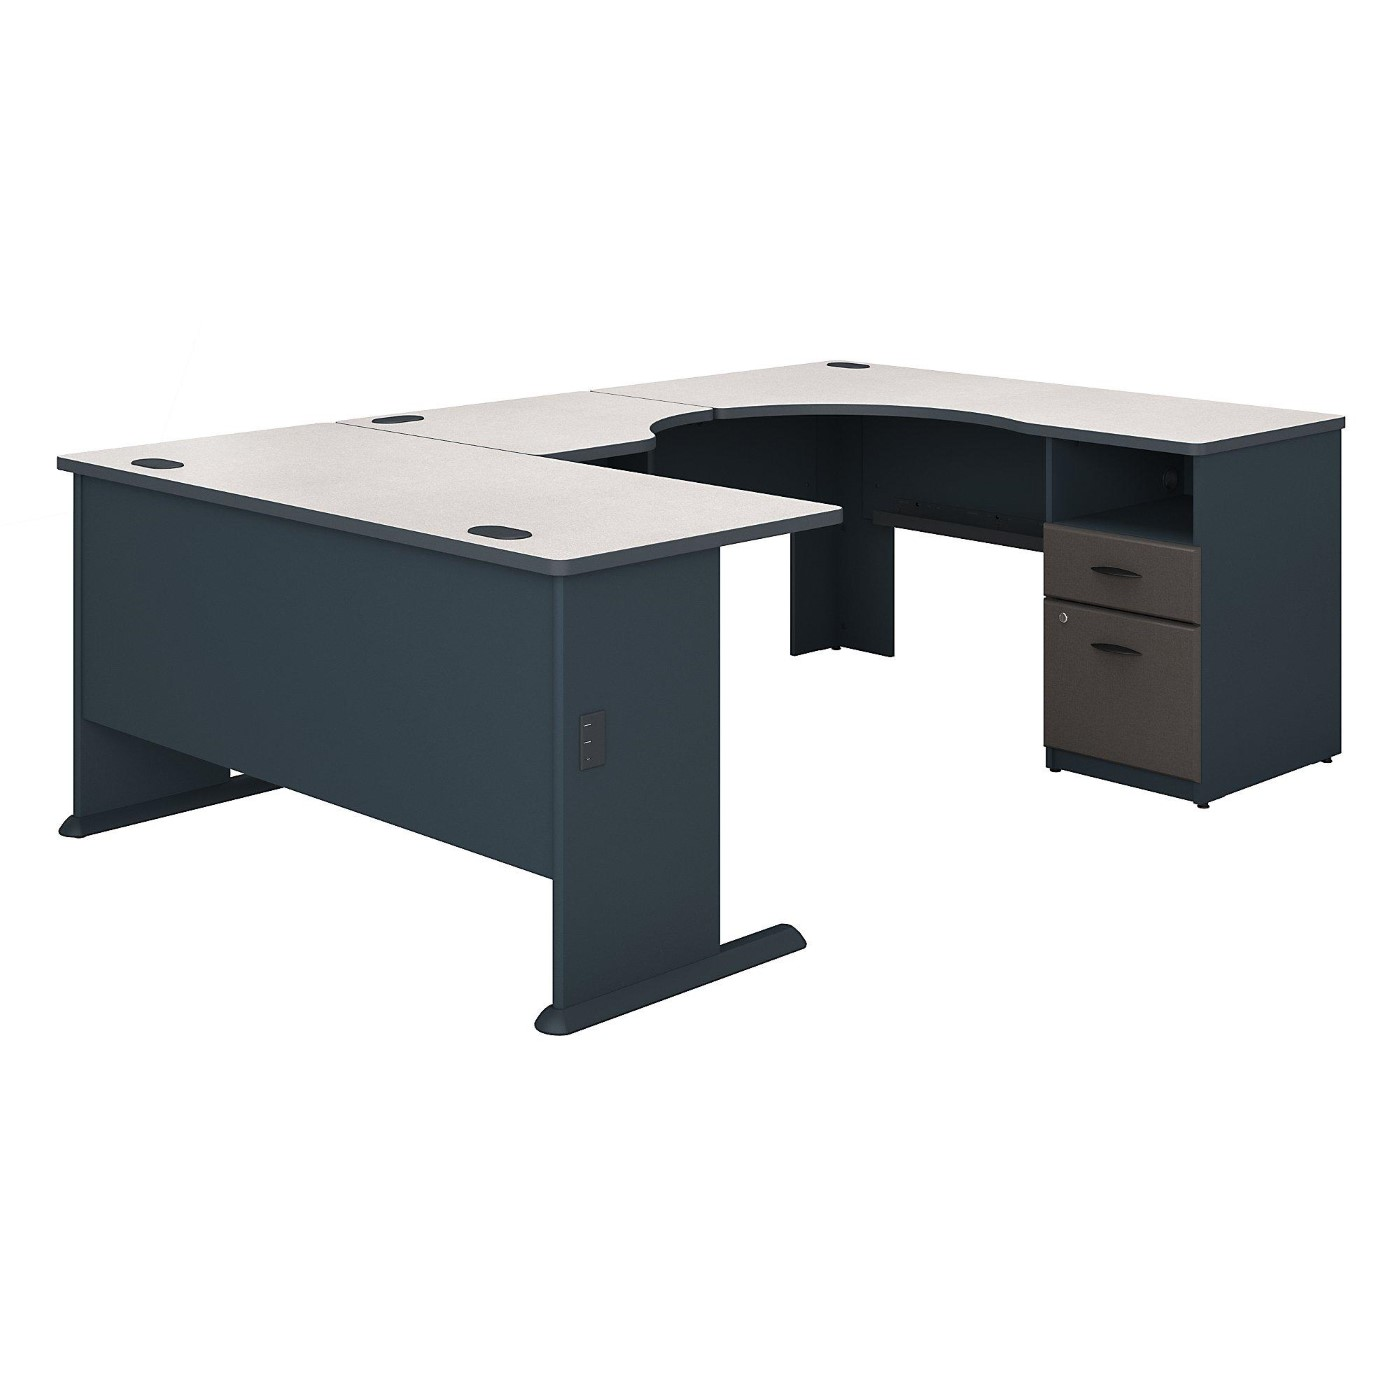 BUSH BUSINESS FURNITURE SERIES A 60W X 93D U SHAPED DESK WITH 2 DRAWER PEDESTAL. FREE SHIPPING.